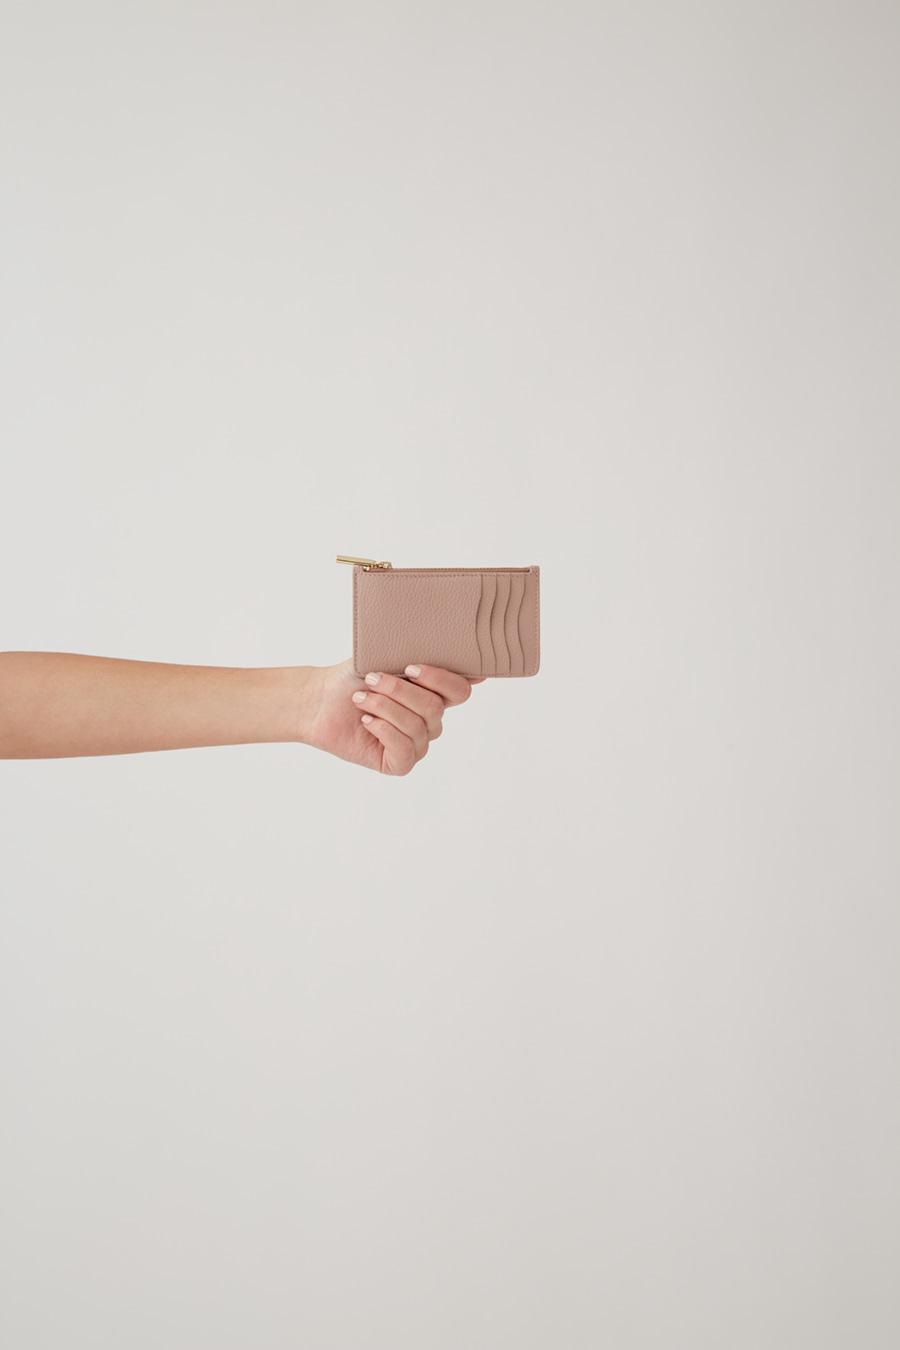 Women's Zip Cardholder in Soft Rose | Pebbled Leather by Cuyana 1